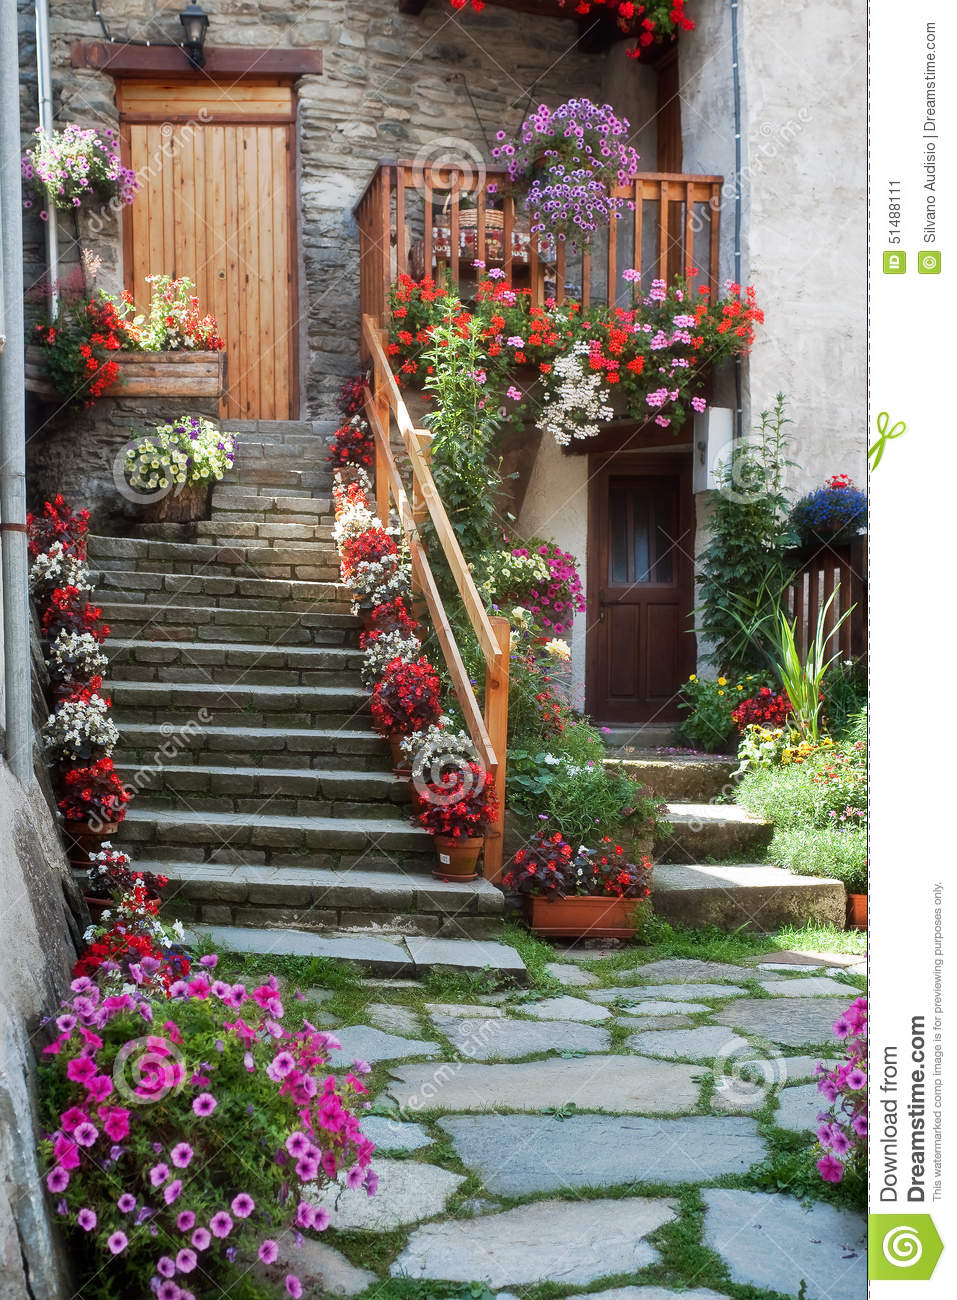 Staircase with flowers stock image Image of ancient 51488111